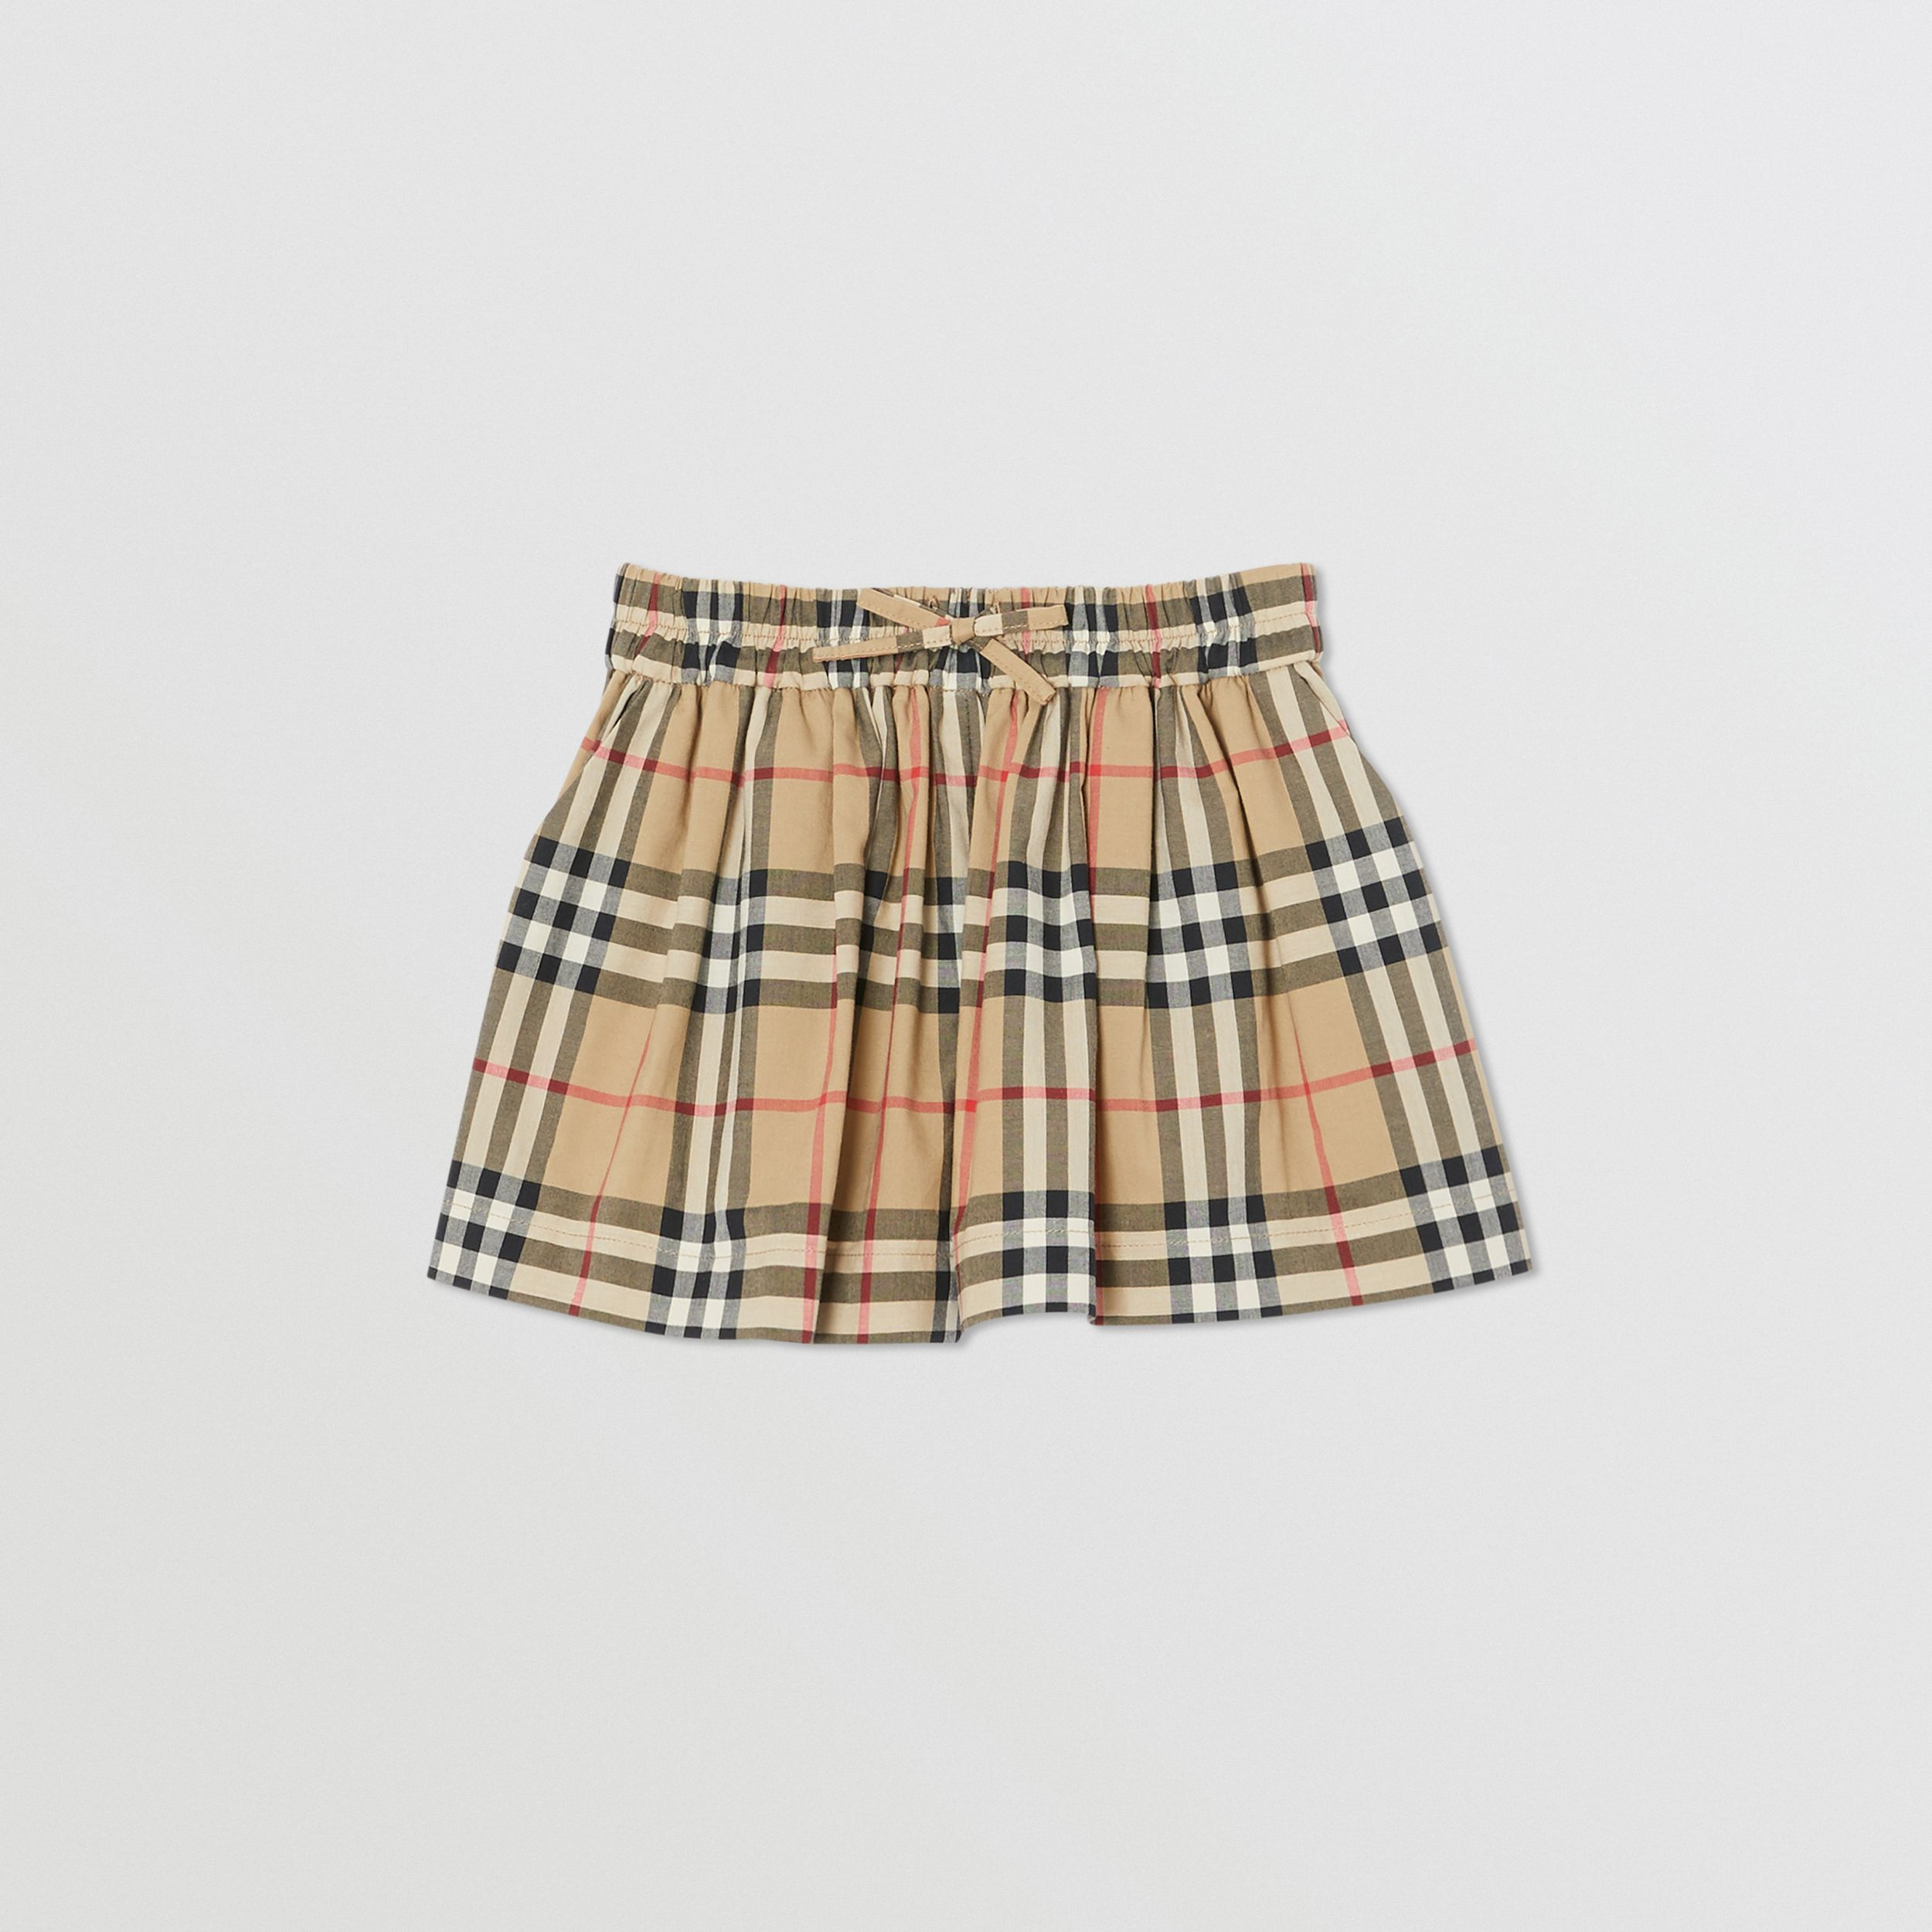 Vintage Check Gathered Cotton Shorts in Archive Beige | Burberry - 1